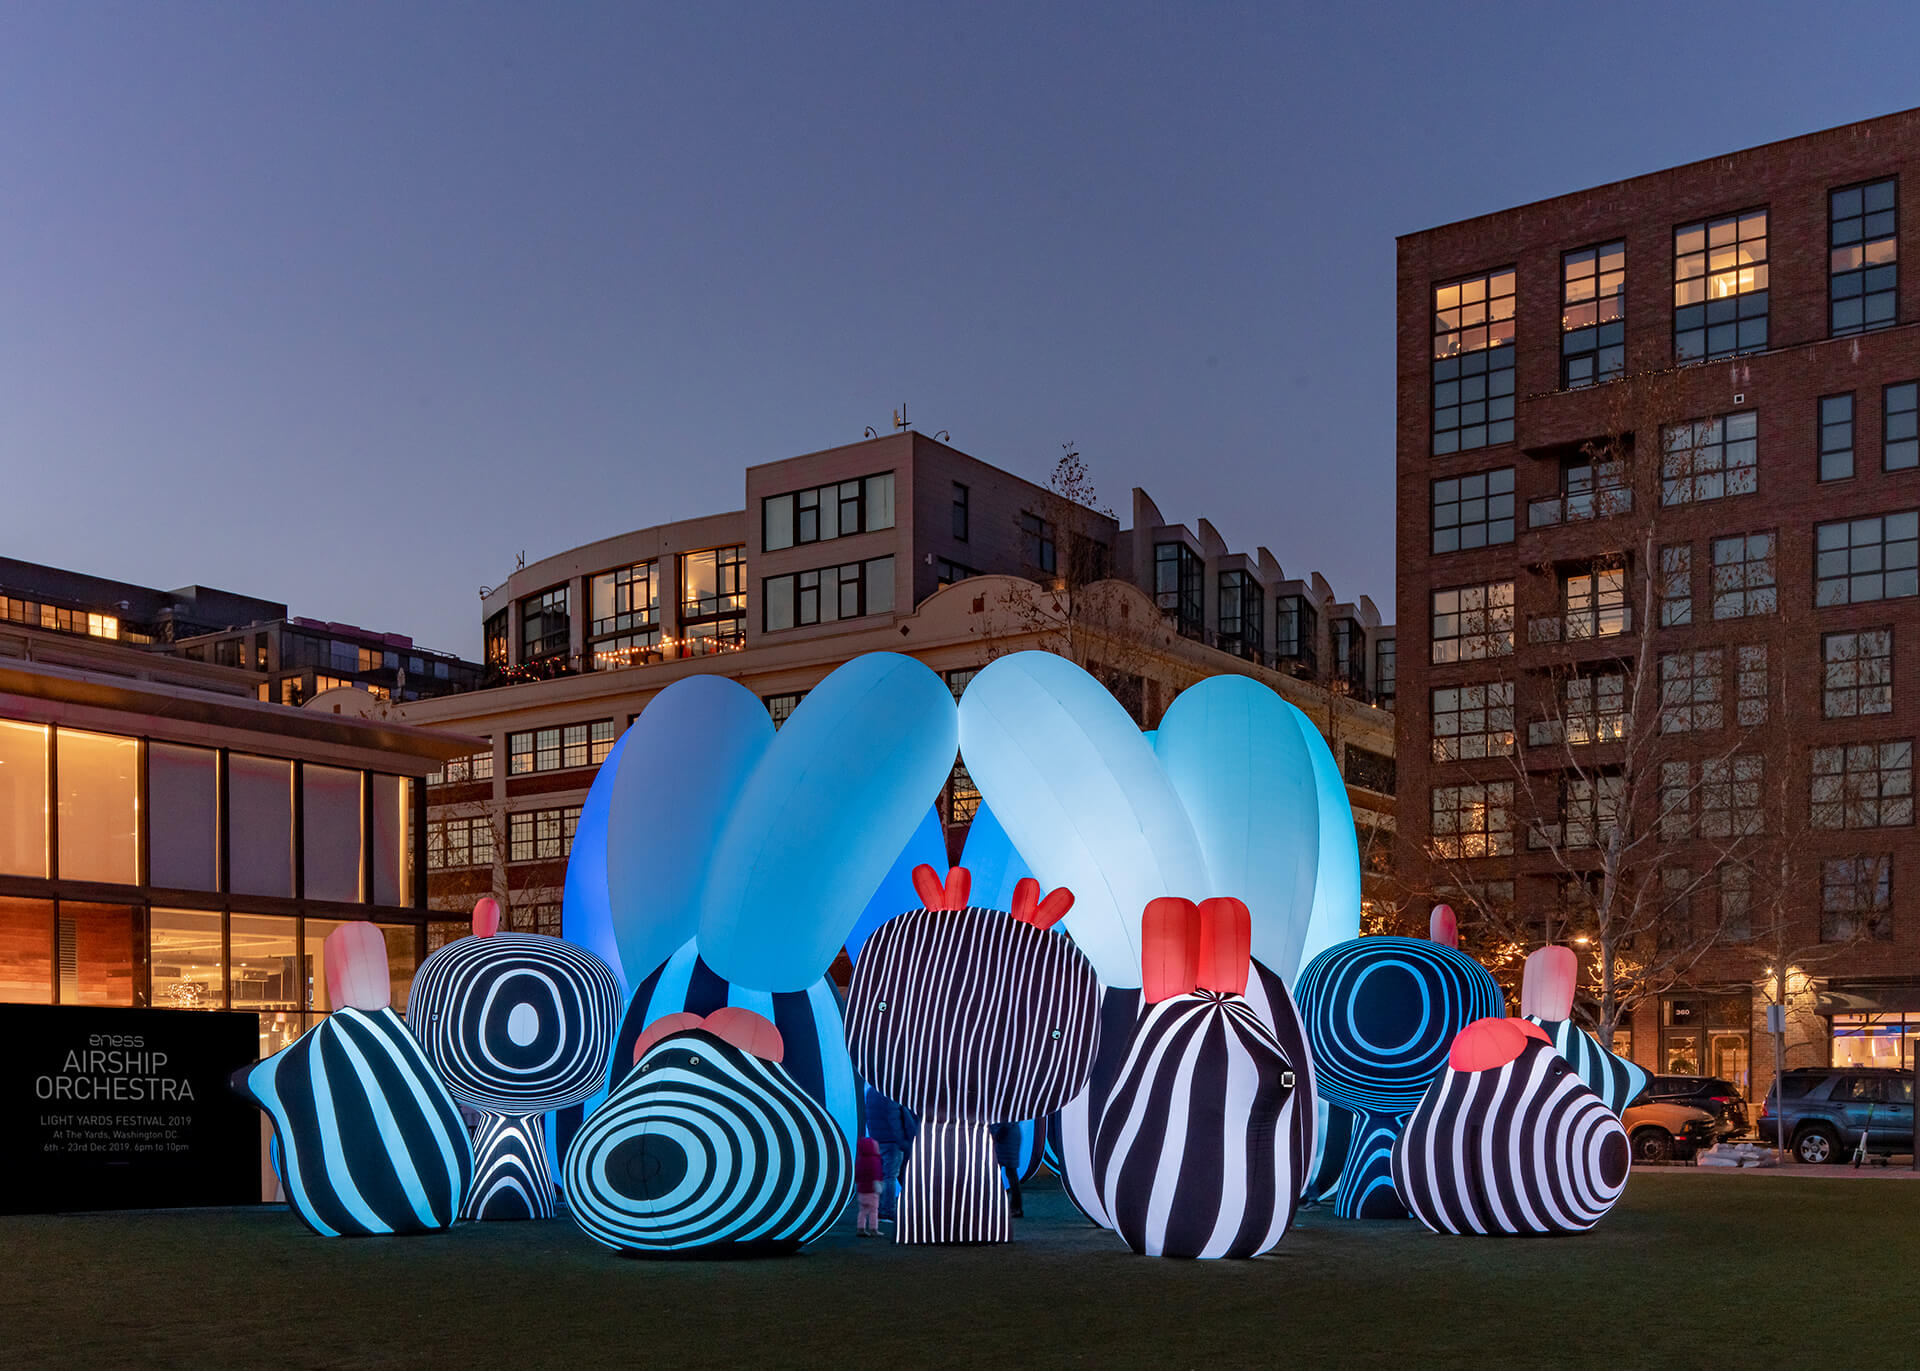 Airship Orchestra by ENESS features 20 inflatables extending over an area of 400 sqm | Airship Orchestra | ENESS | STIRworld